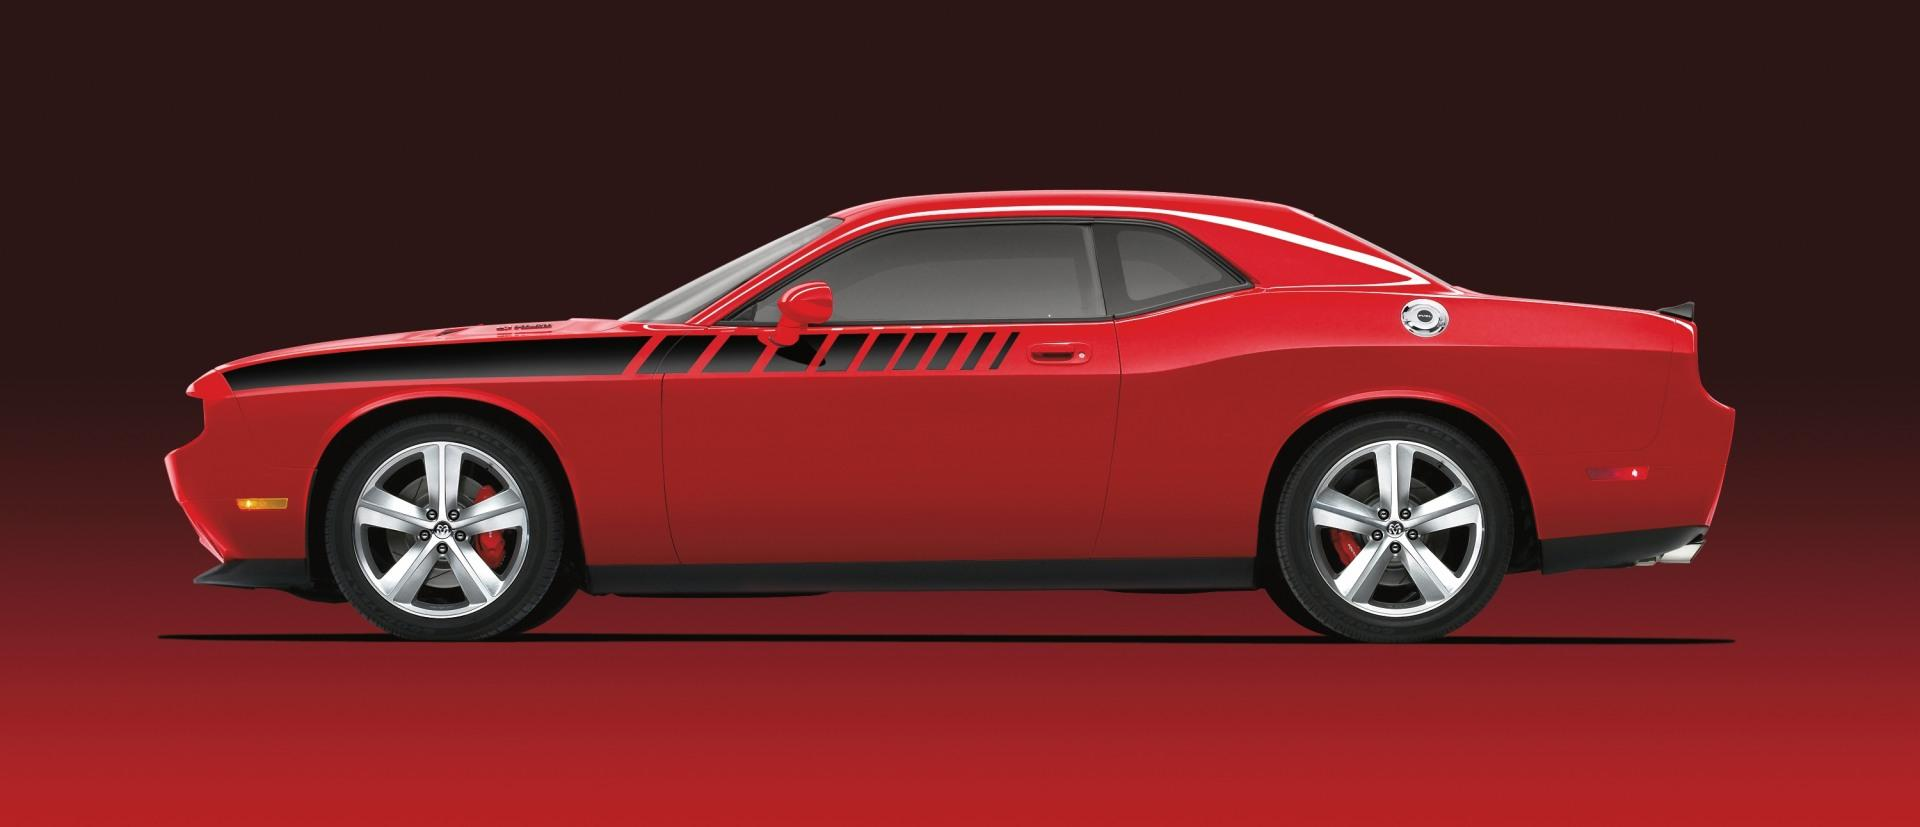 Dodge Charger Muscle Car Wallpaper 2010 Dodge Challenger Appearance Package News And Information